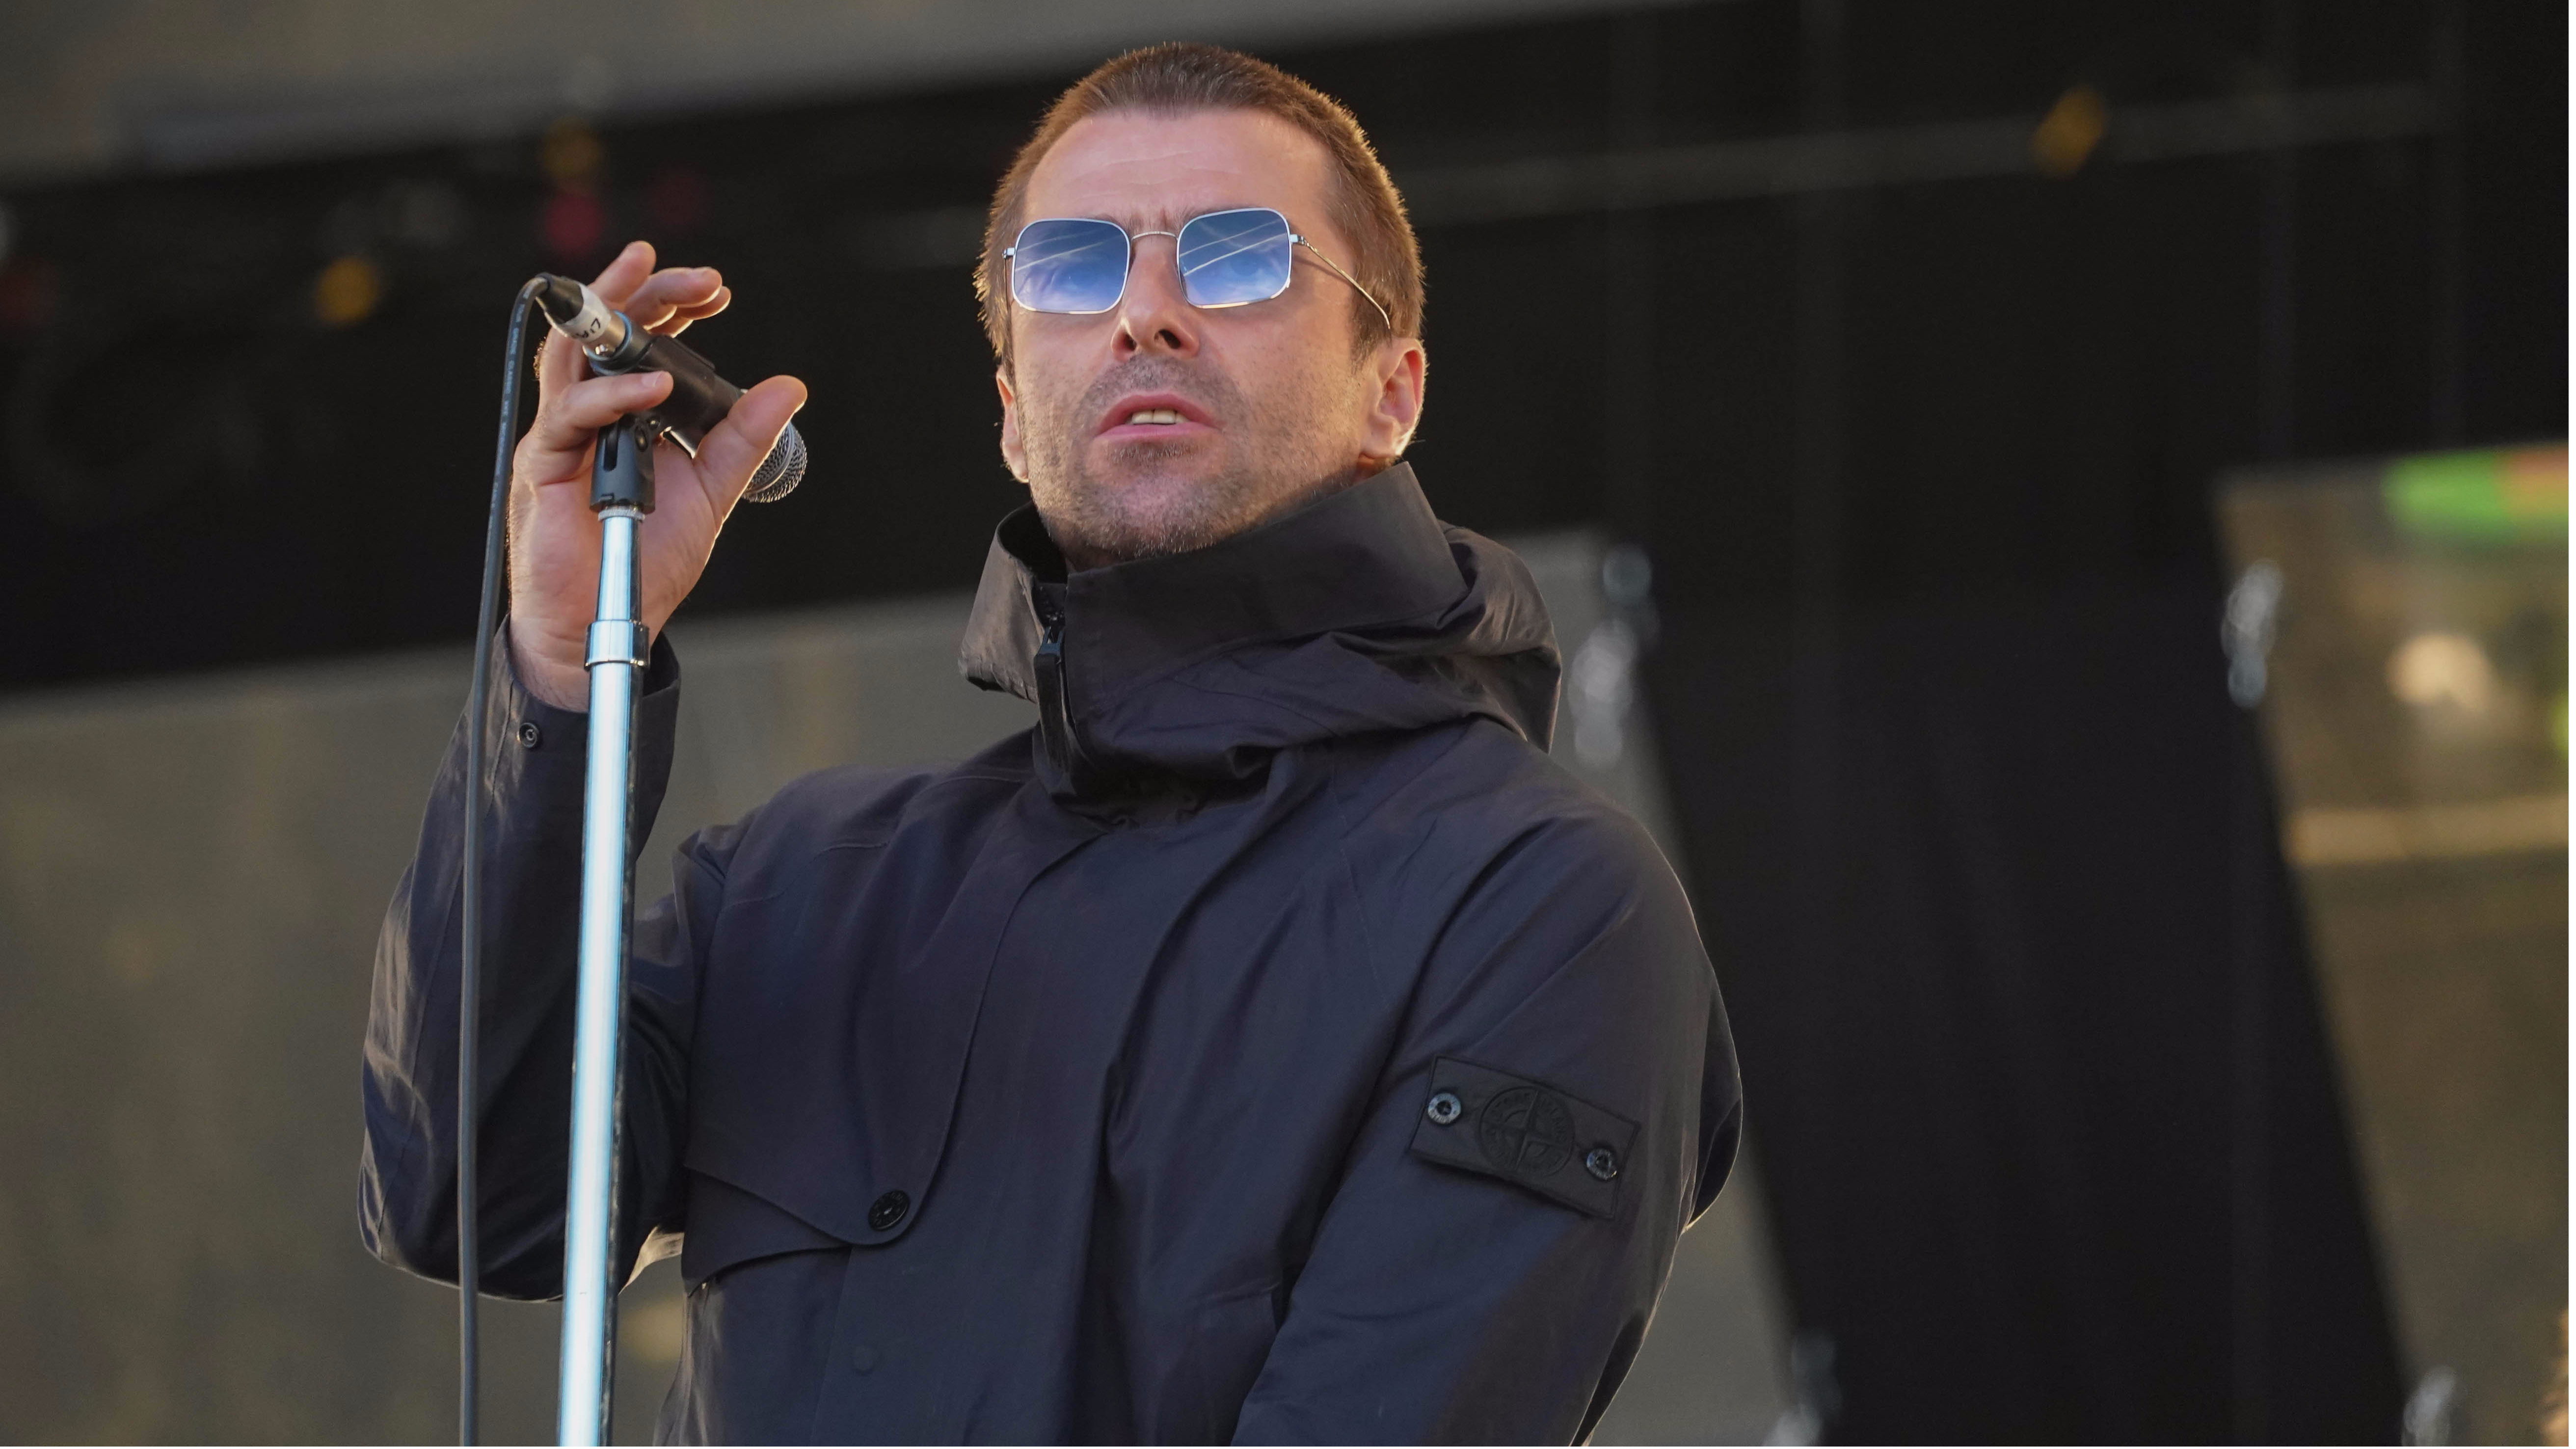 Liam Gallagher On Why He Wears A Parka At All Times, Even While Gardening